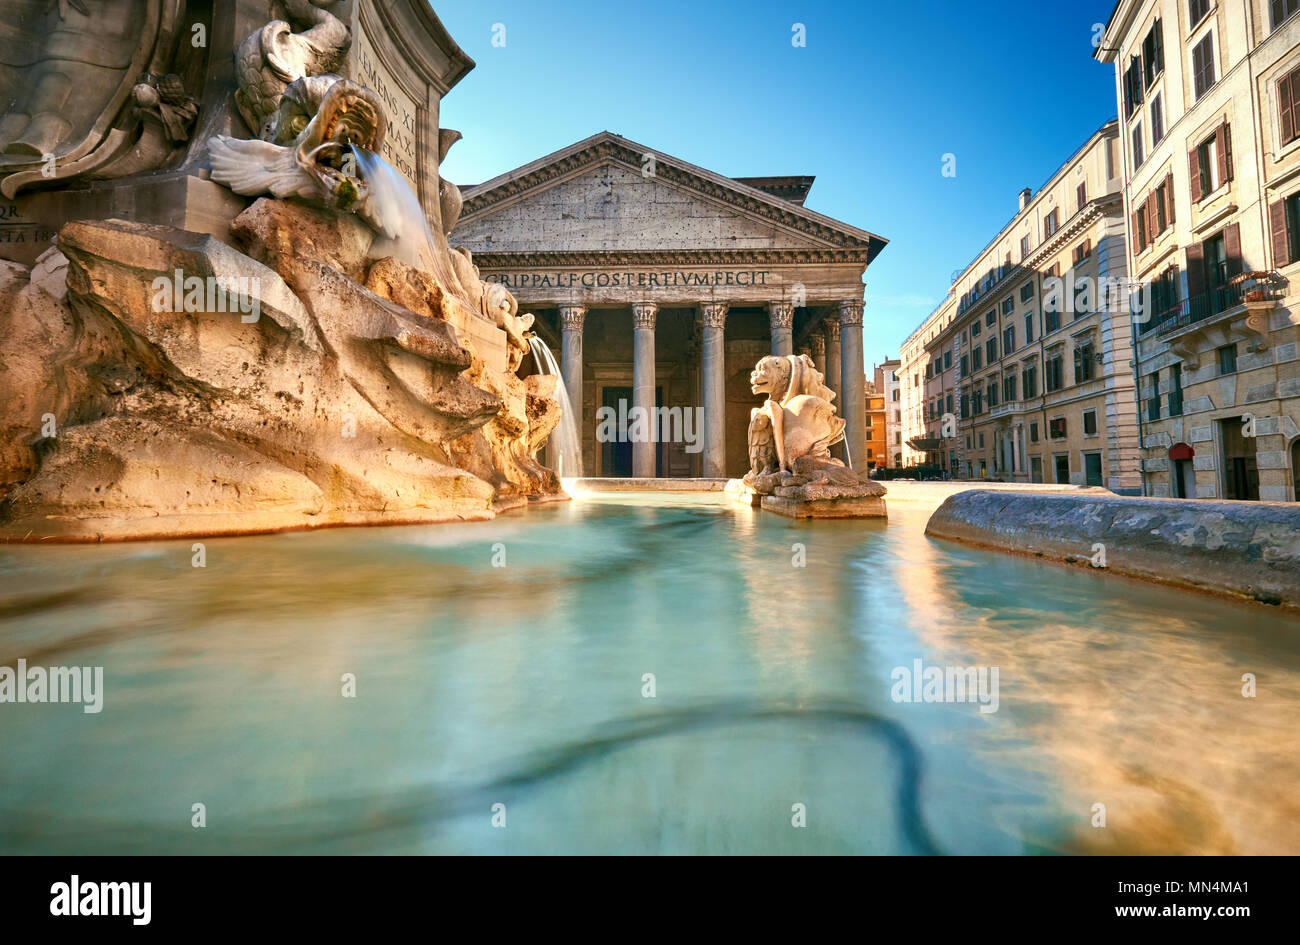 Fountain on Piazza della Rotonda with Parthenon behind on a bright morning in Rome, Italy - Stock Image